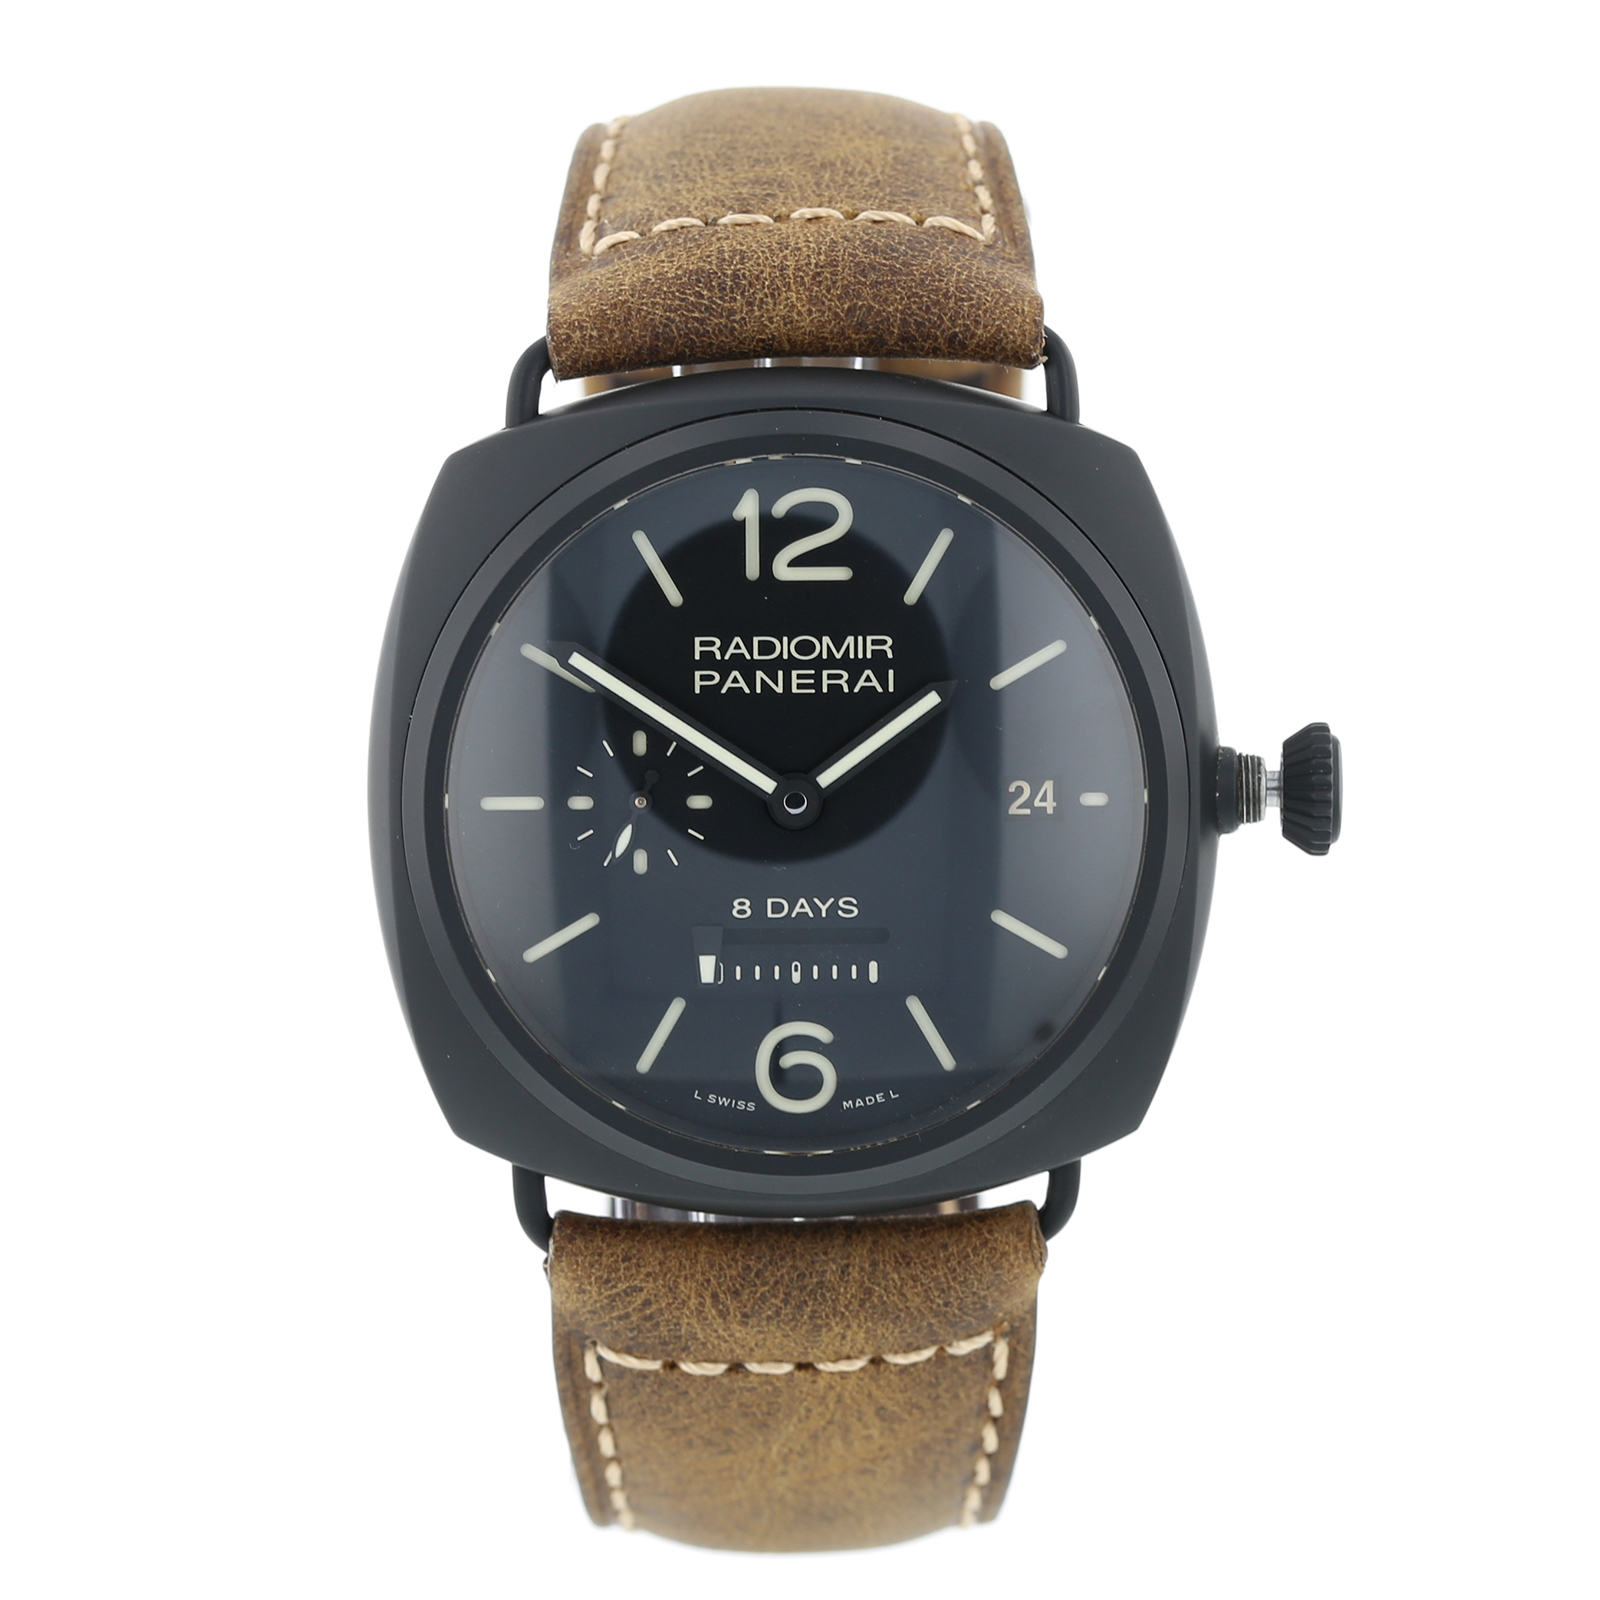 Pre-Owned Panerai Radiomir 8 Mens Watch